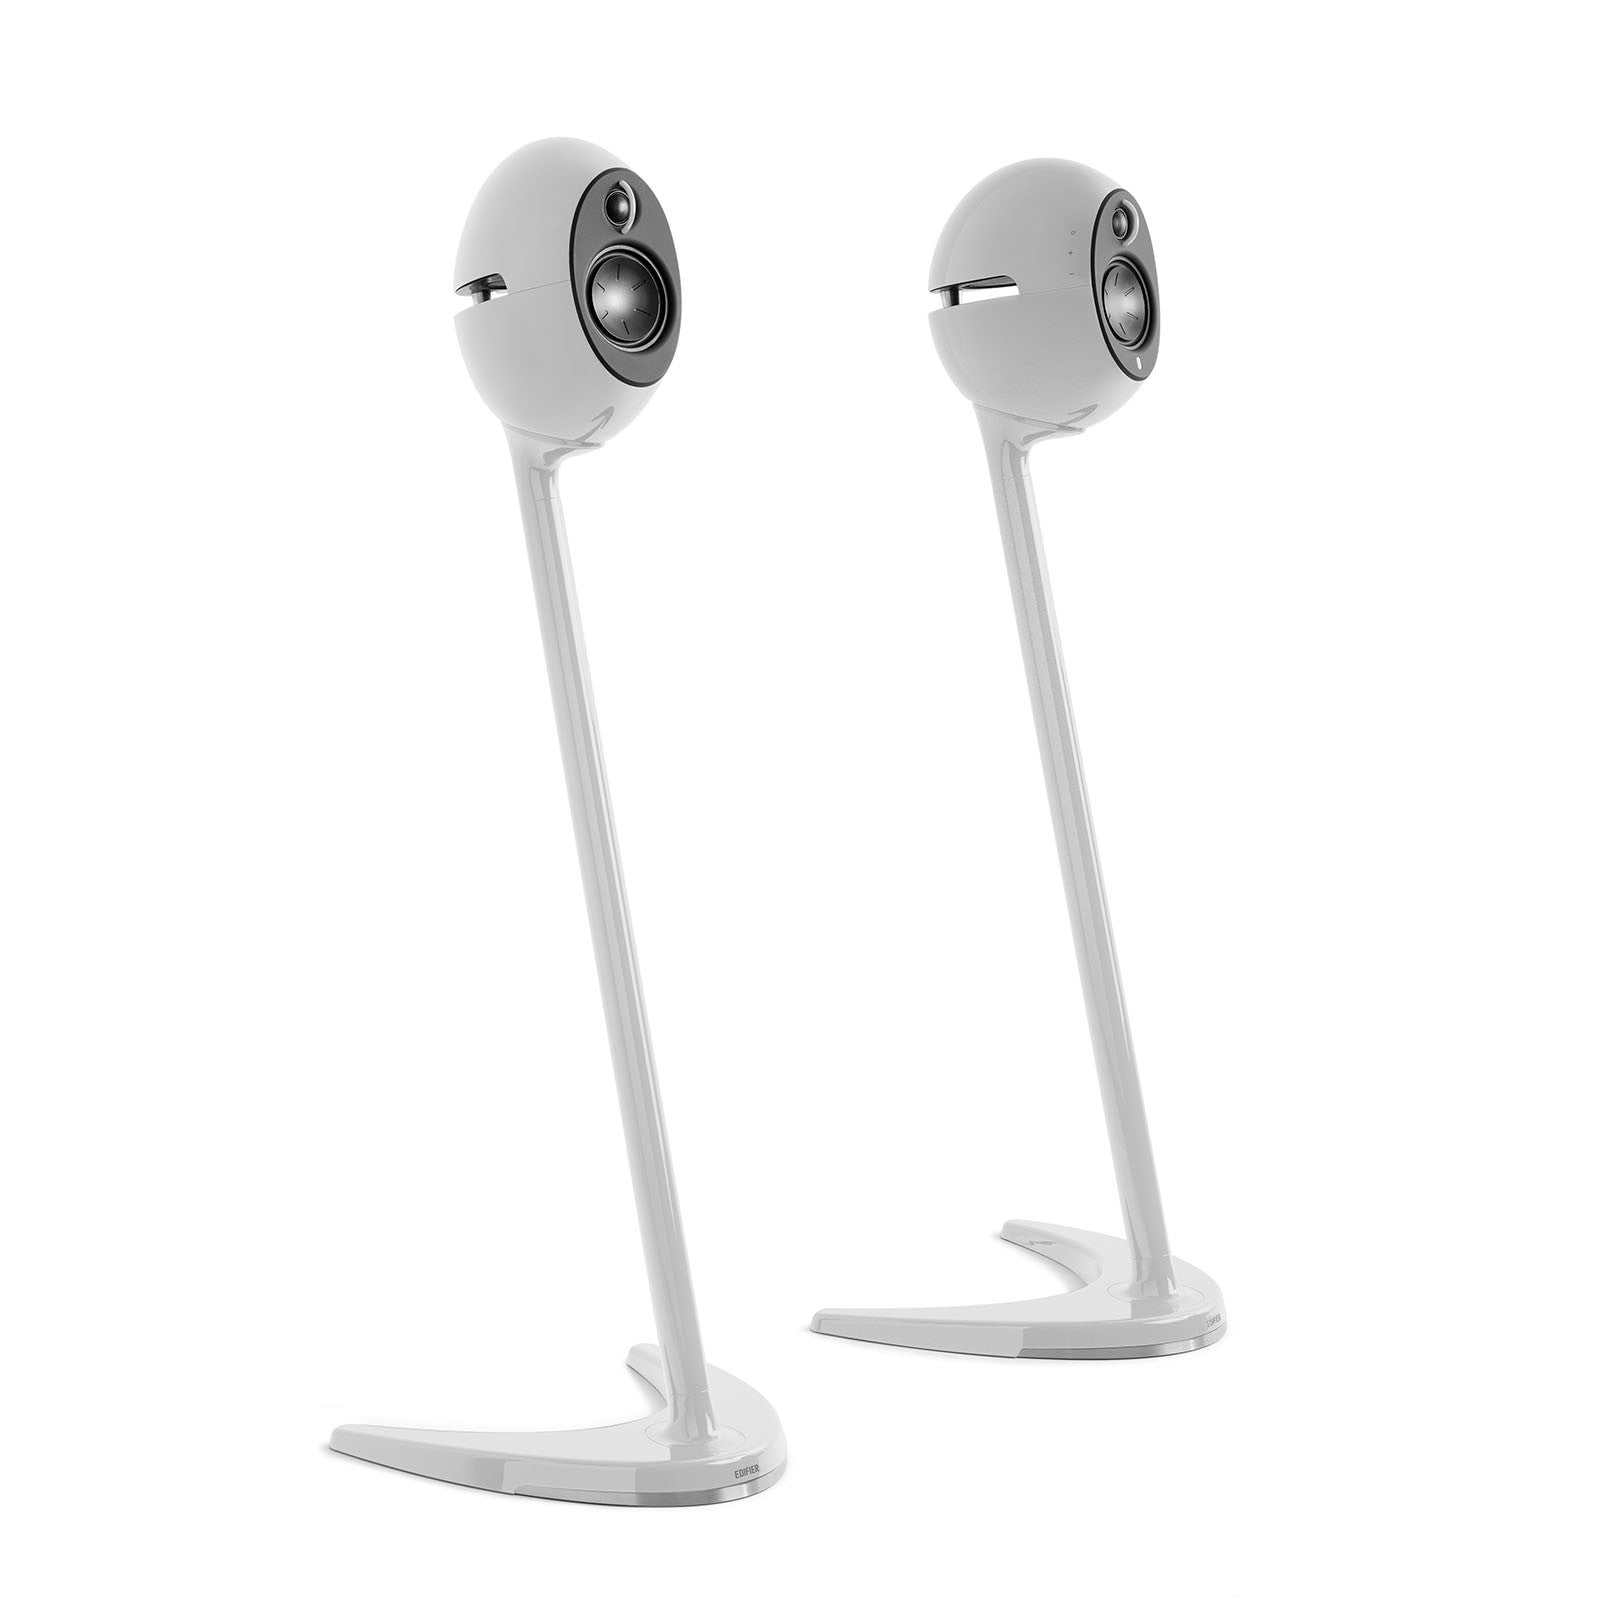 Edifier e25 / e25HD Speaker Stands with long cables - Black